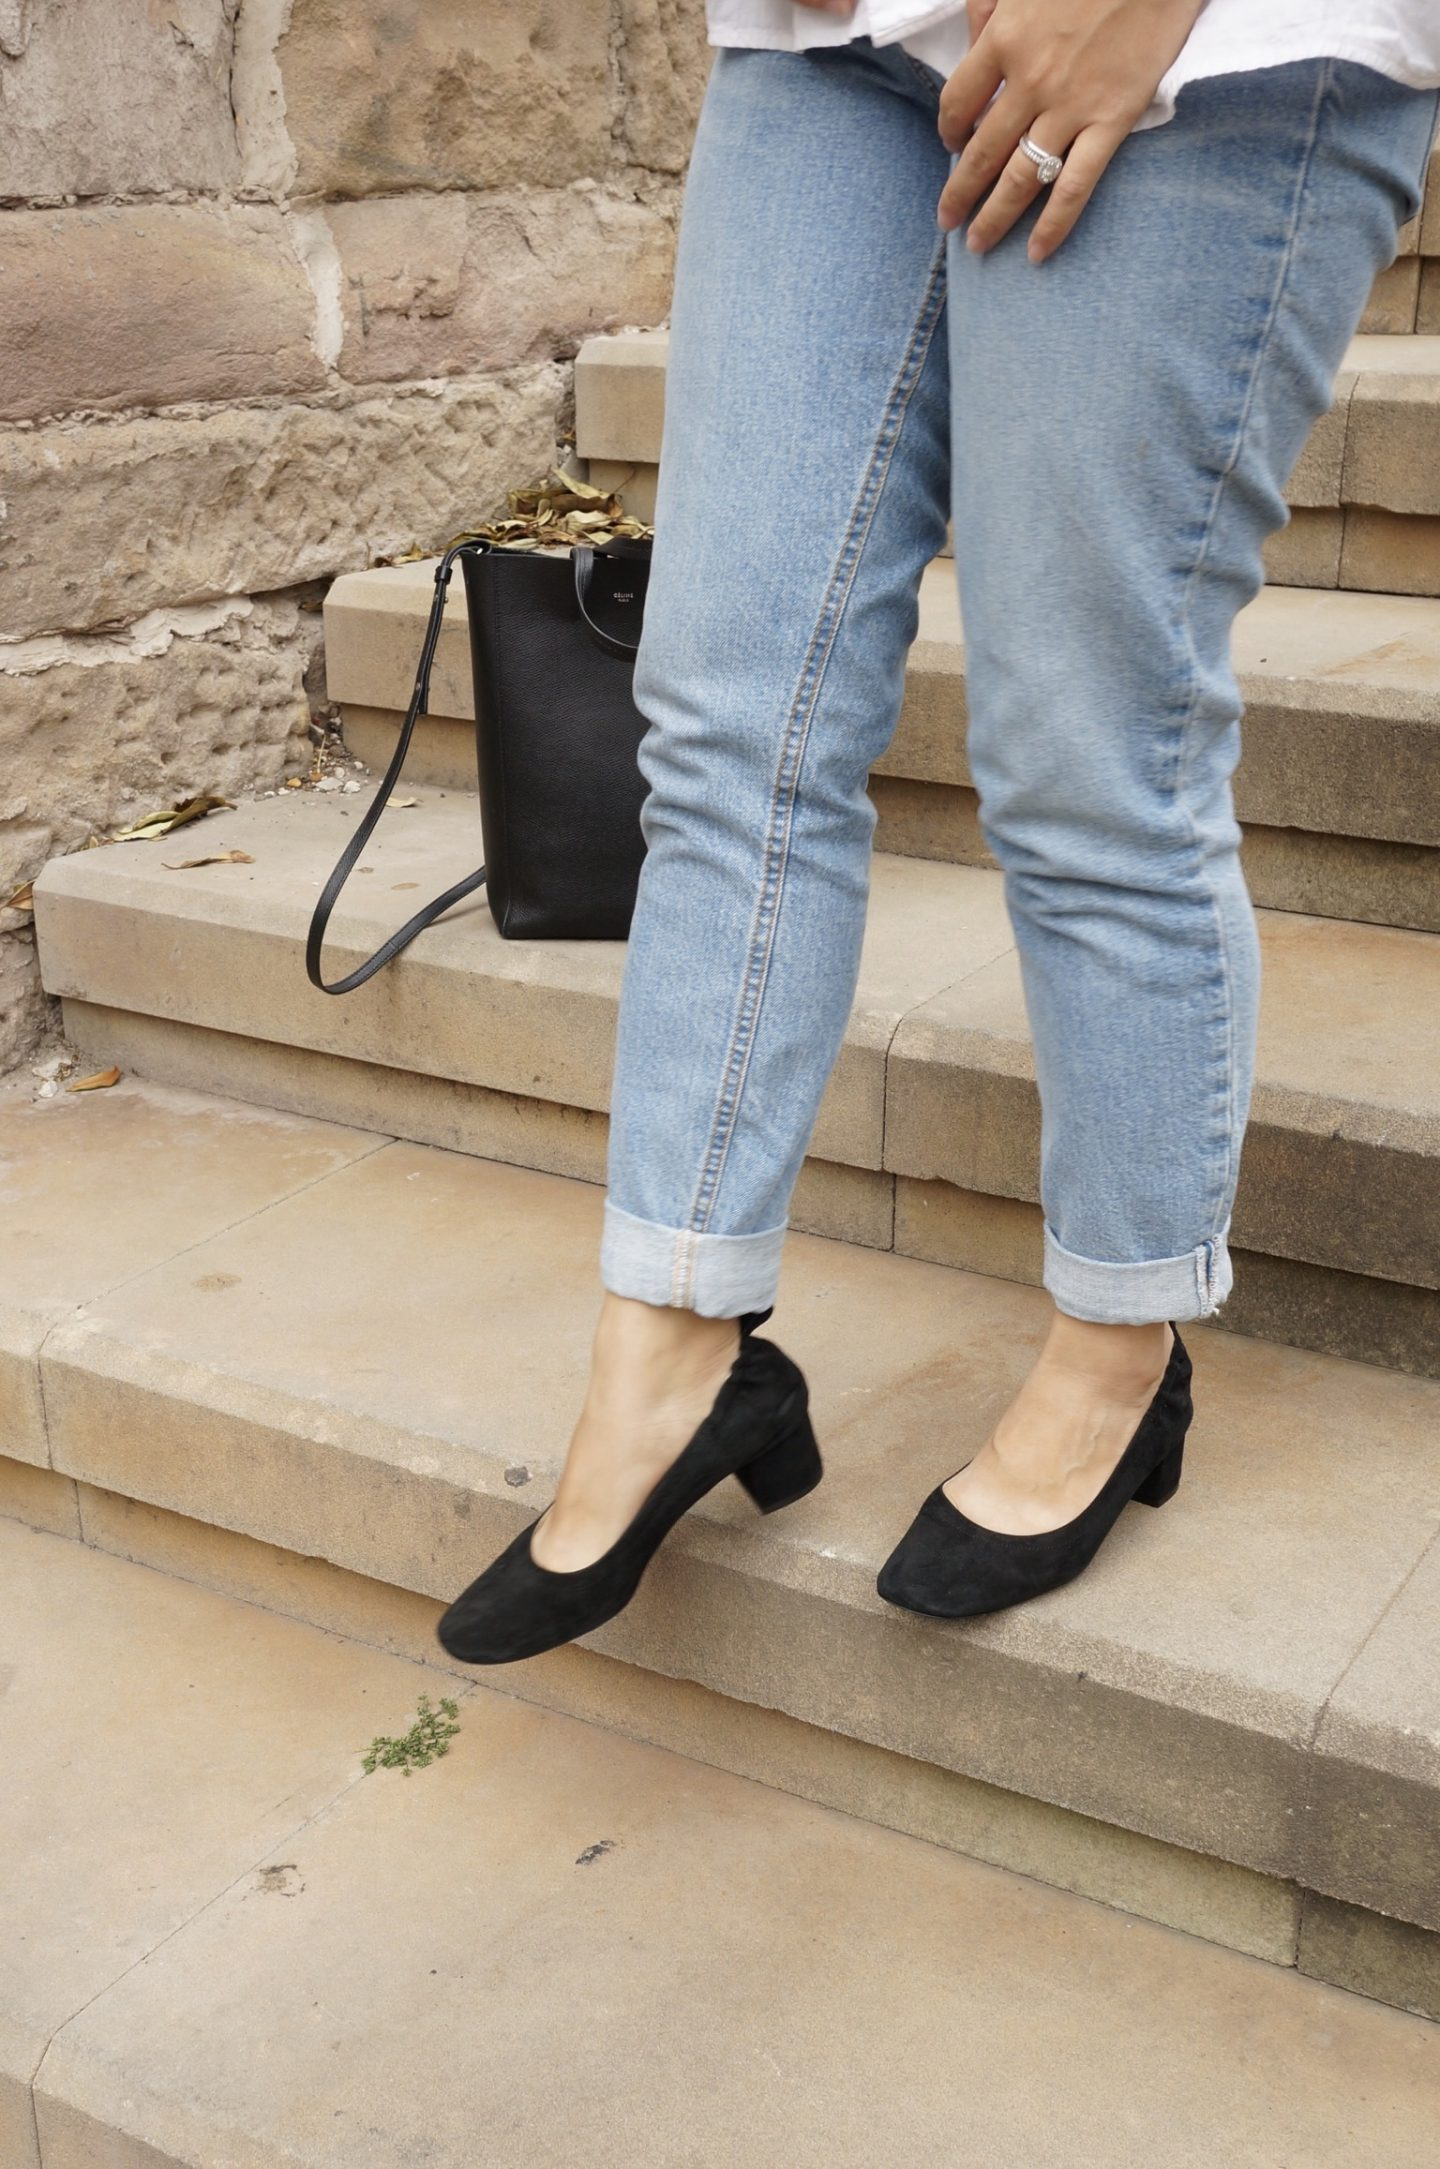 Woman wearing jeans and black Everlane Day Heels